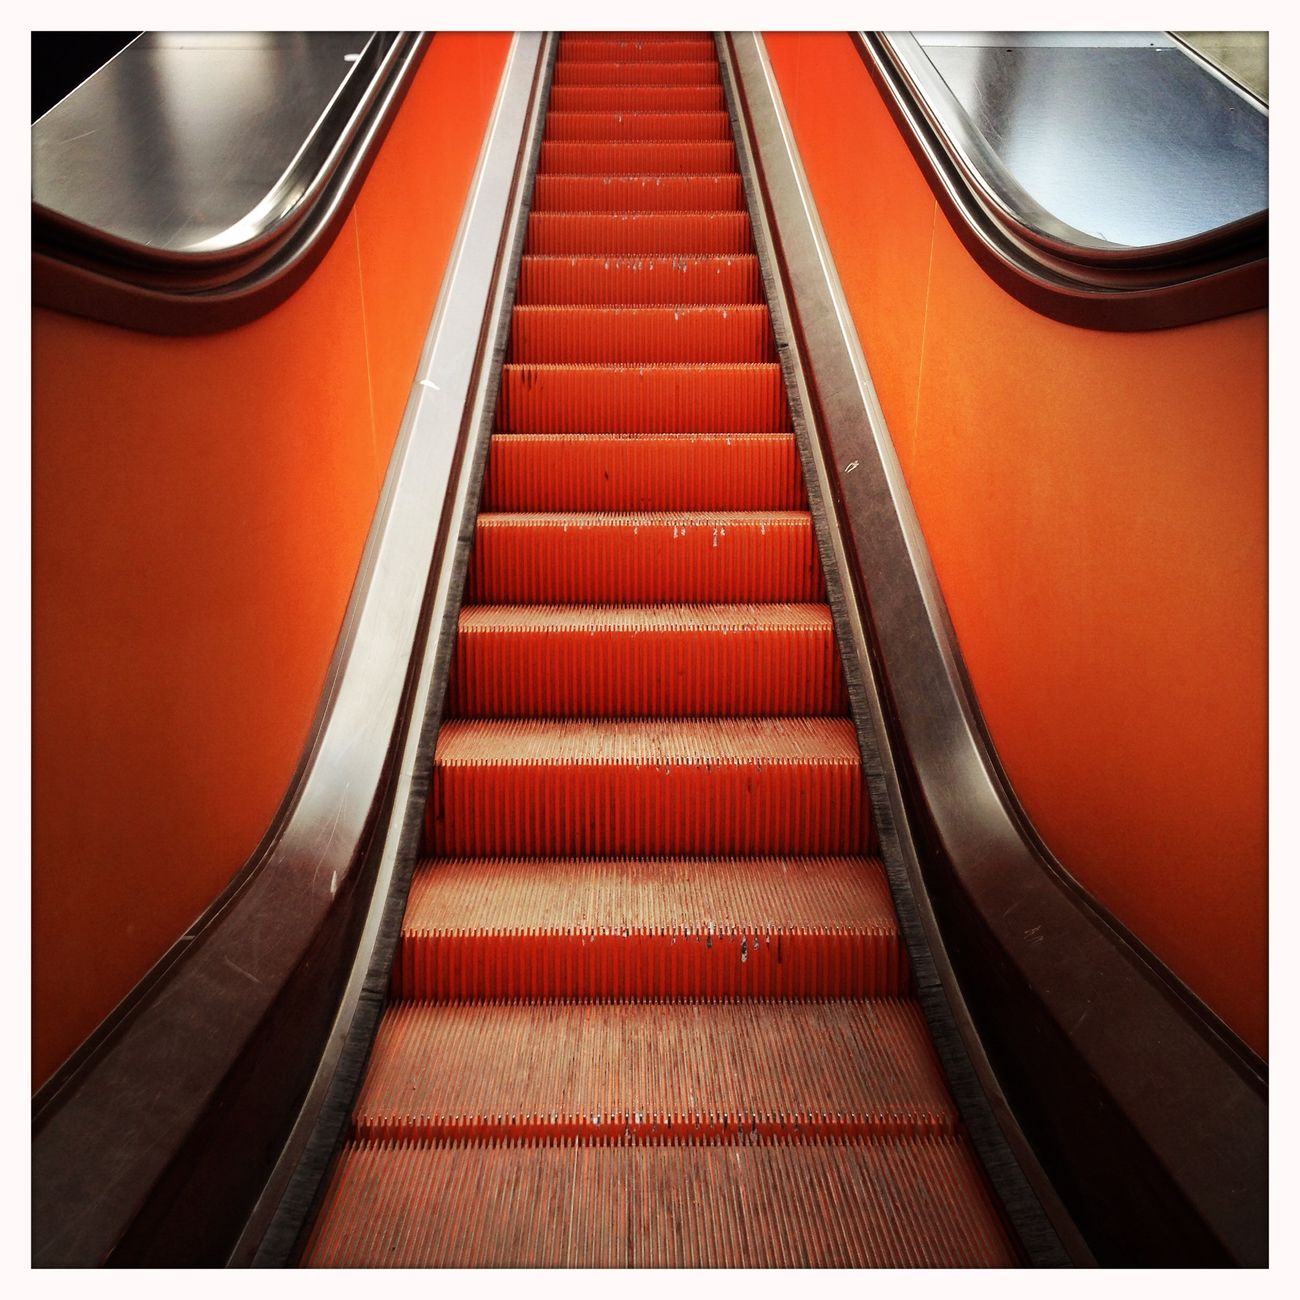 Architectural Detail Oranksch Arkiromantix Orange By Motorola Top Of The Pott's Stairways